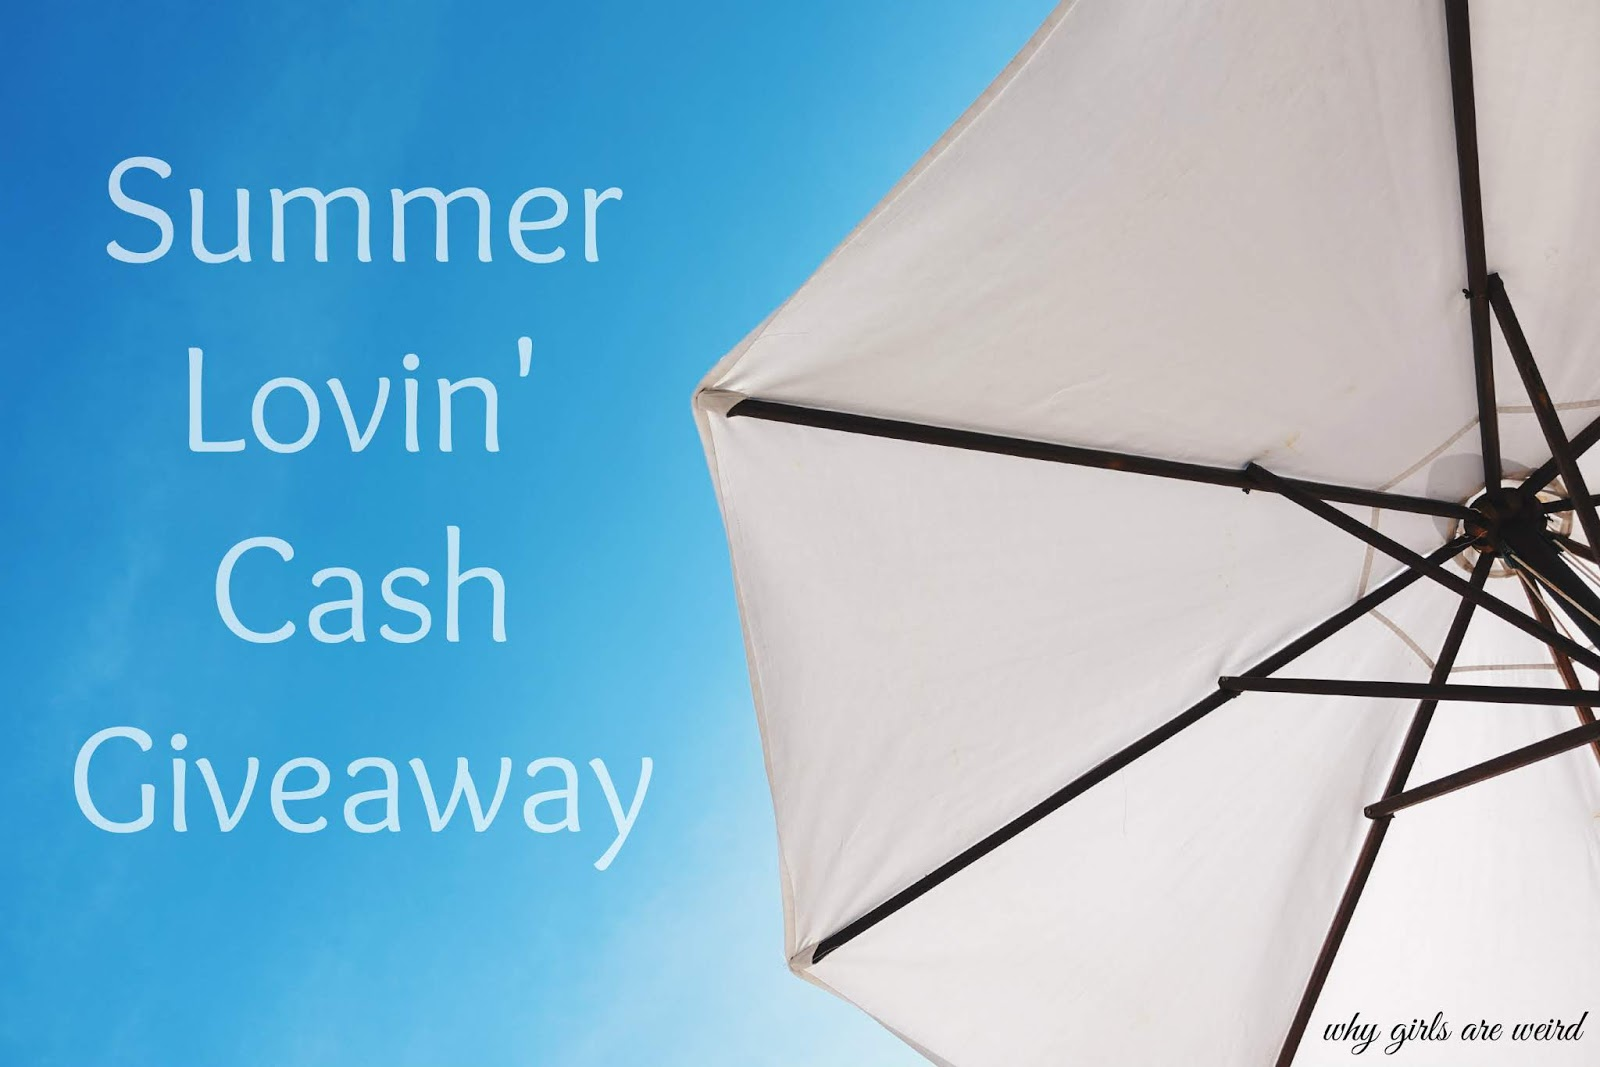 Summer Lovin' Blog Giveaway